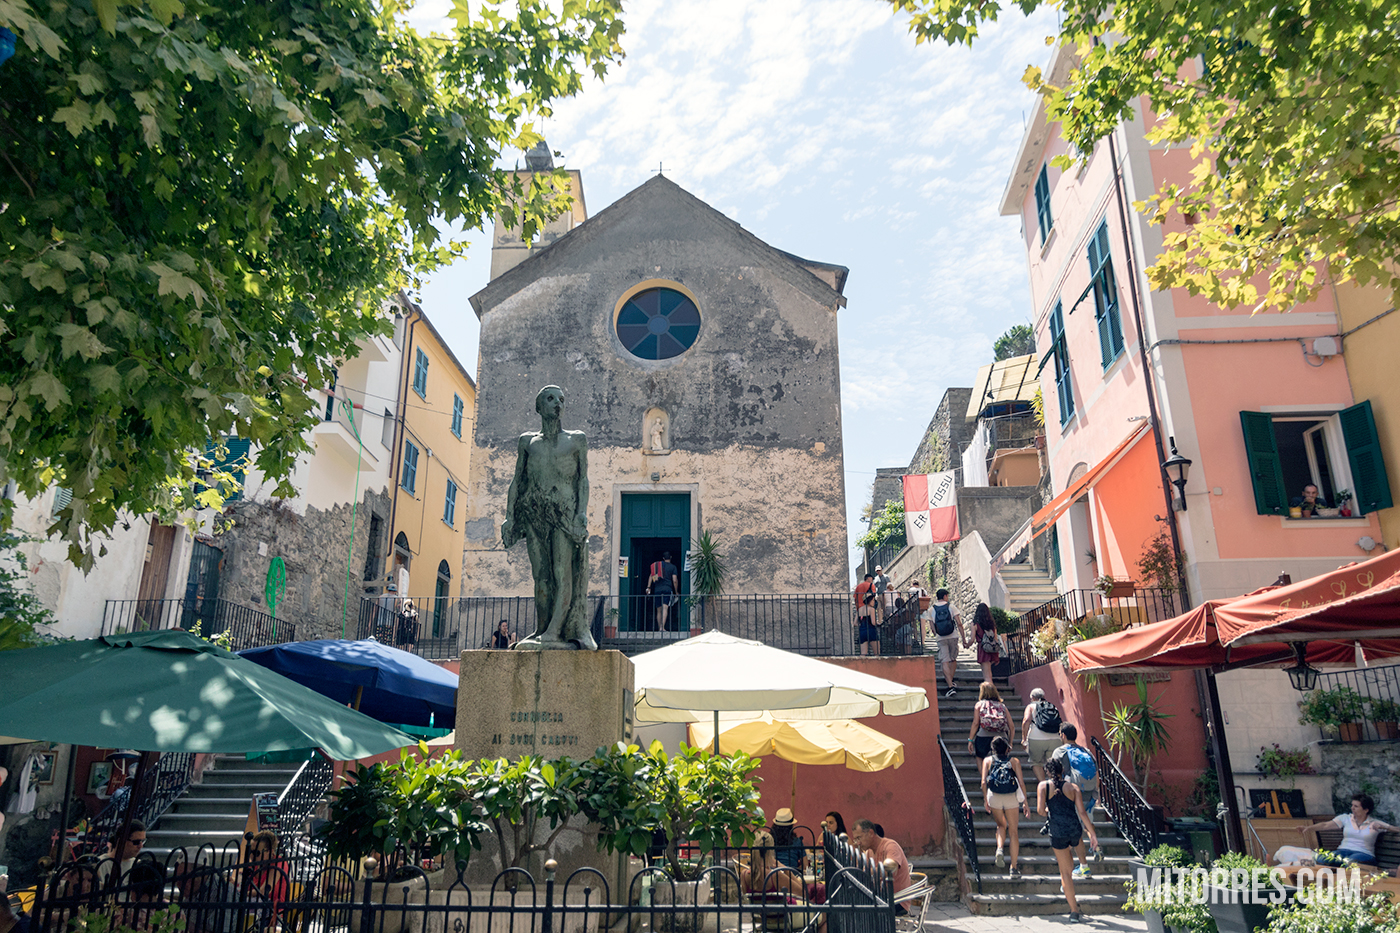 Largo Taragio Square in Corniglia, Cinque Terre. Photo: Marlon I. Torres